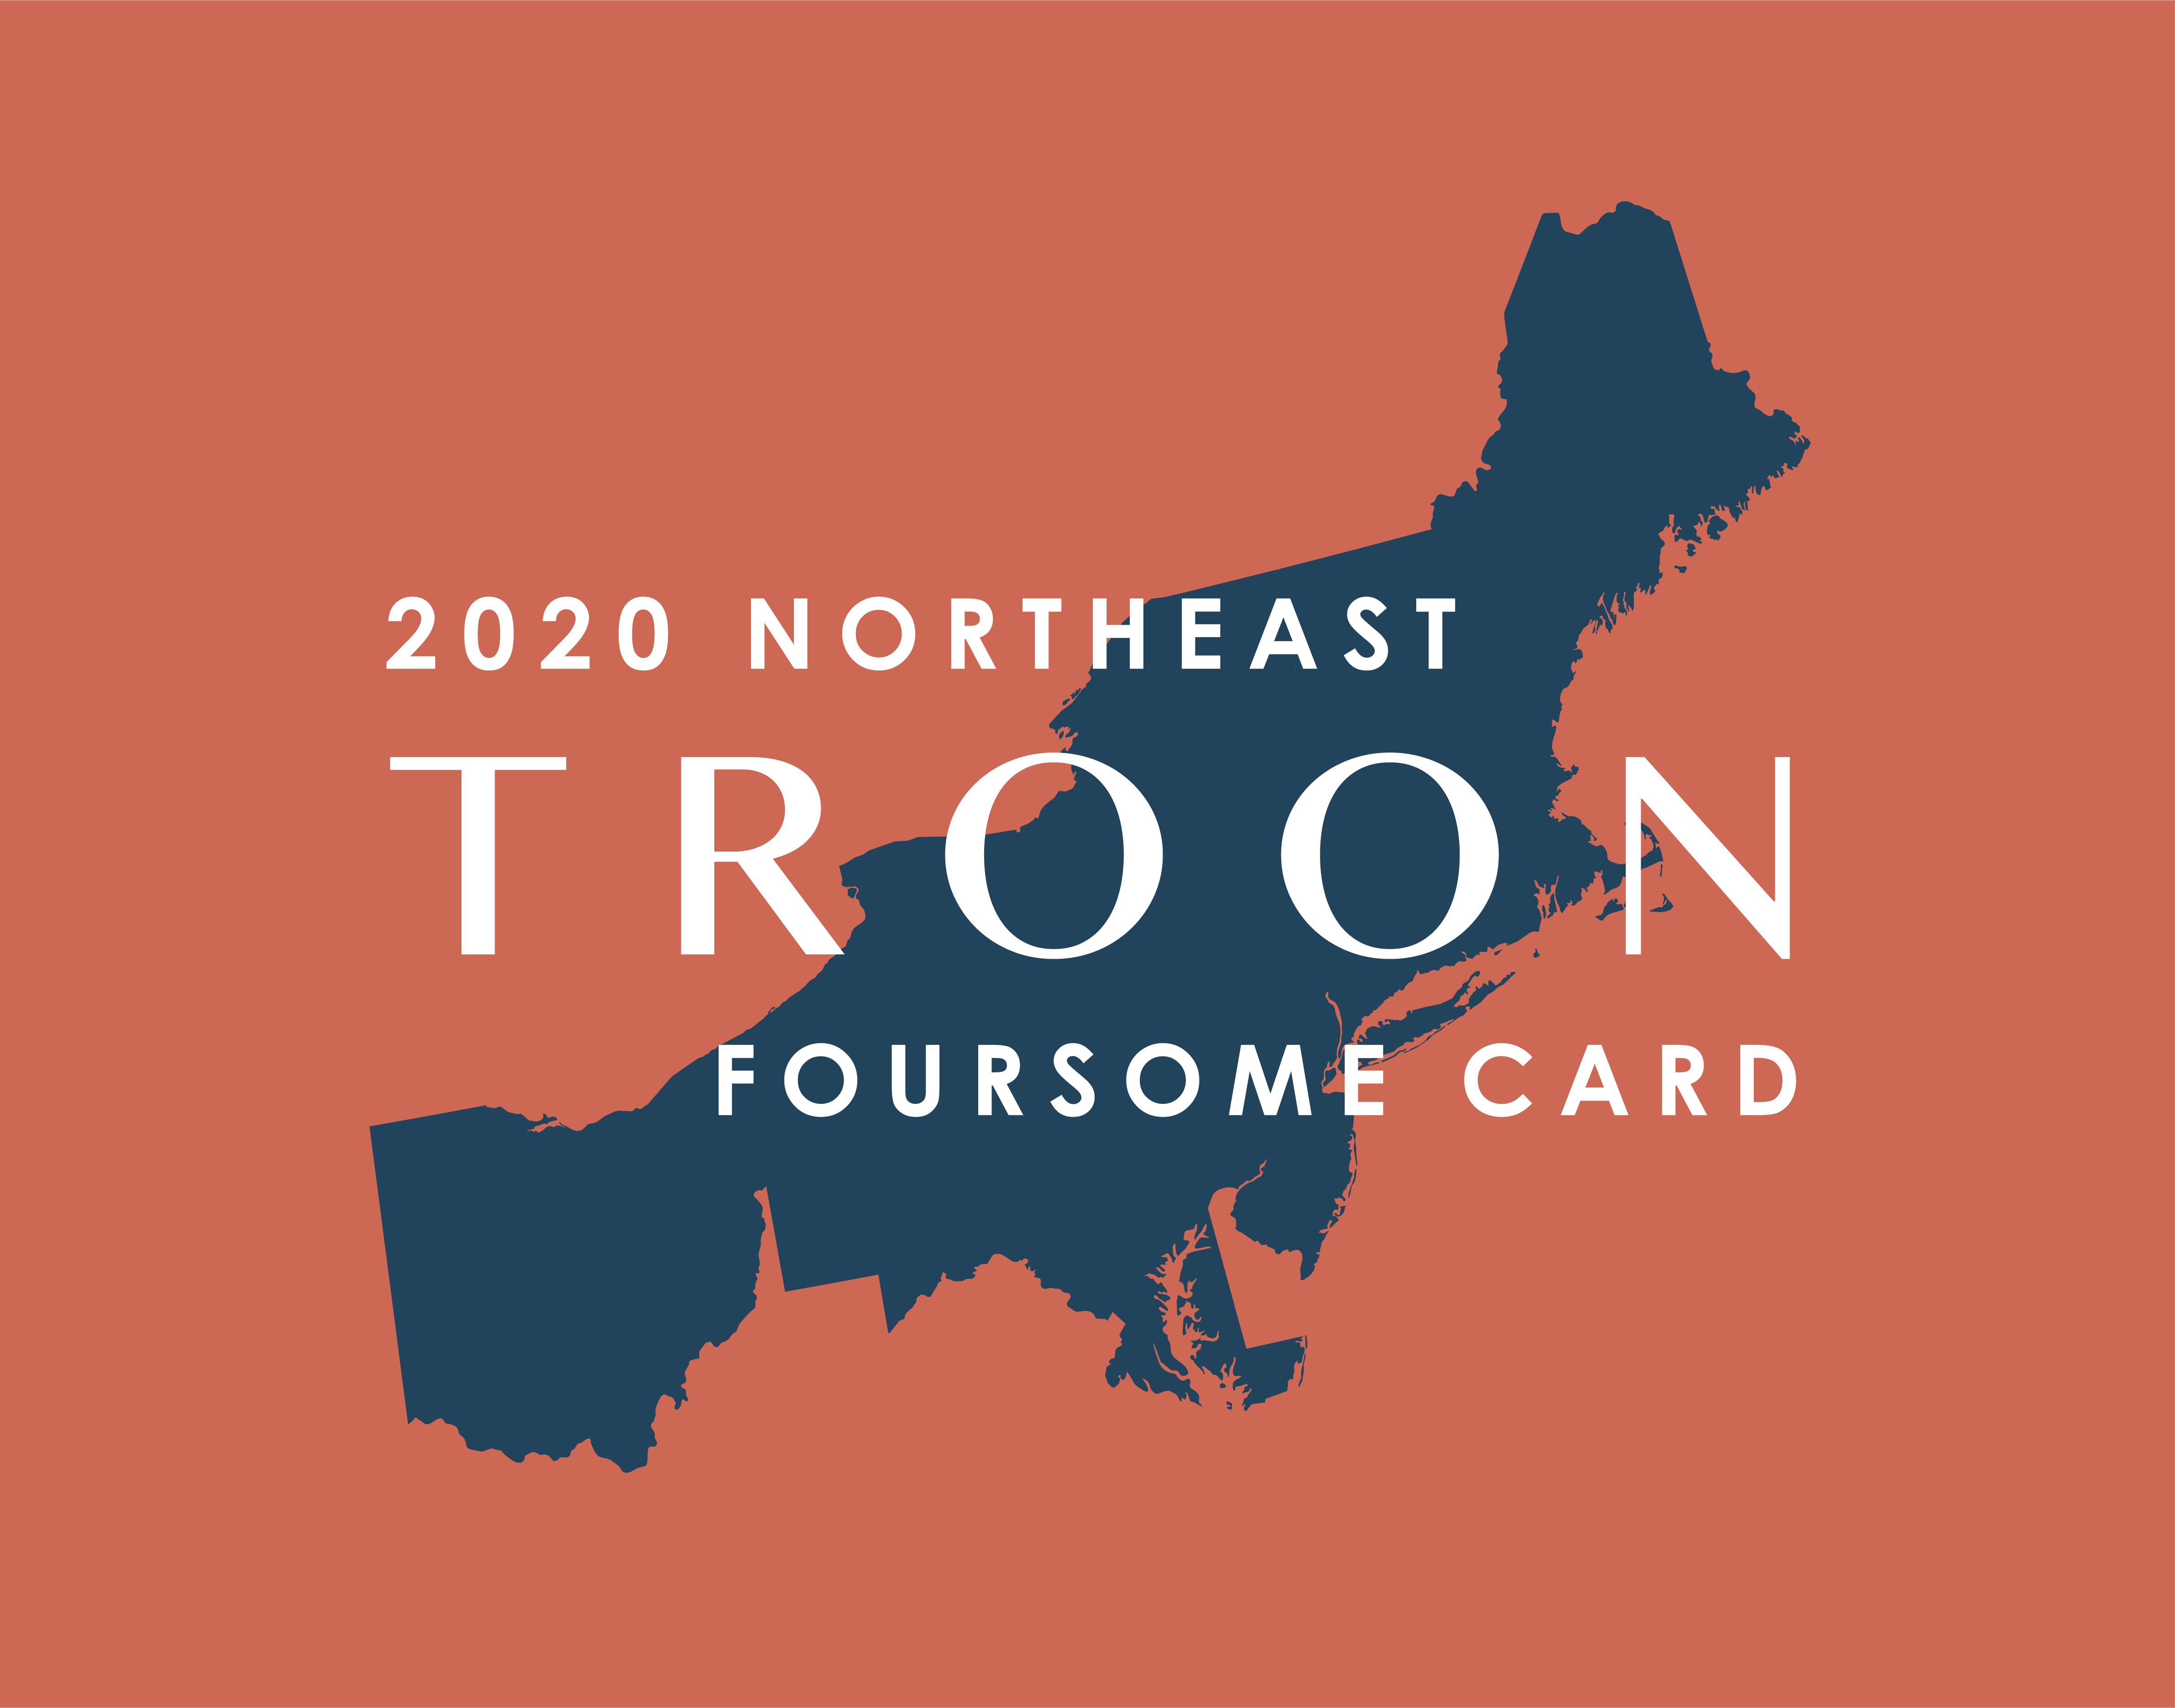 2020 Northeast FourSome Card